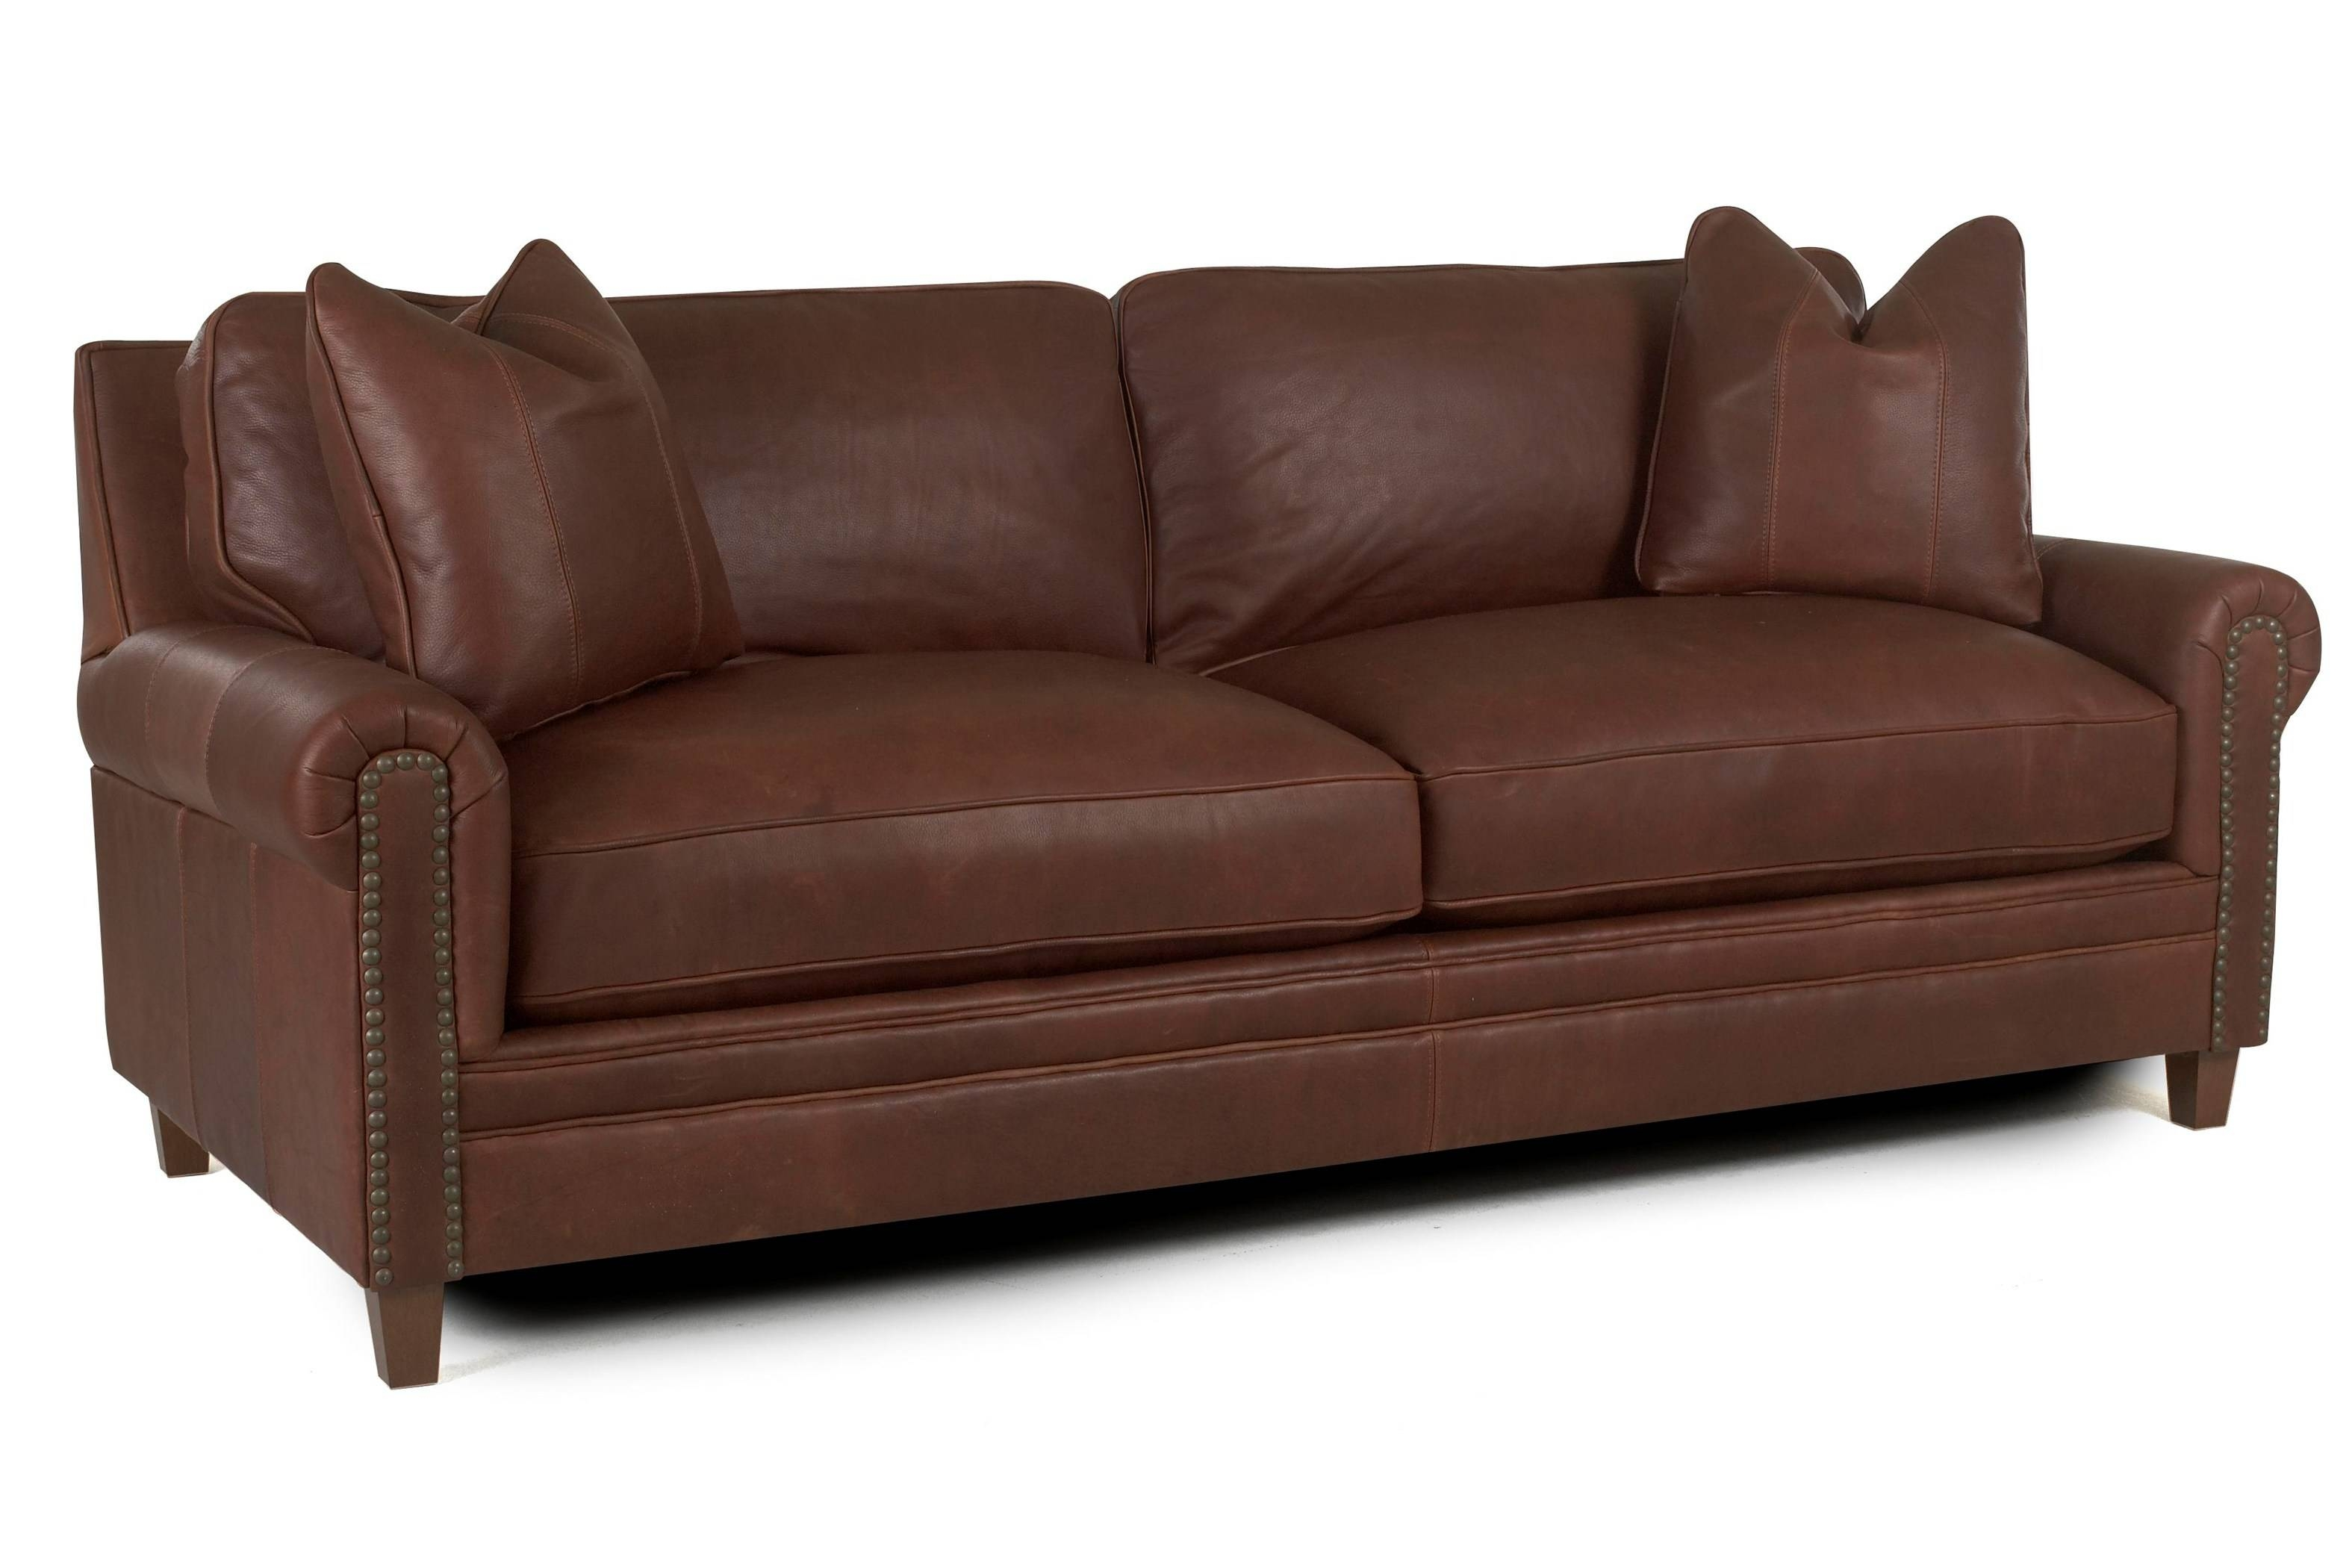 Sleeper sofas at sears 1025thepartycom for Sectional sofas from sears